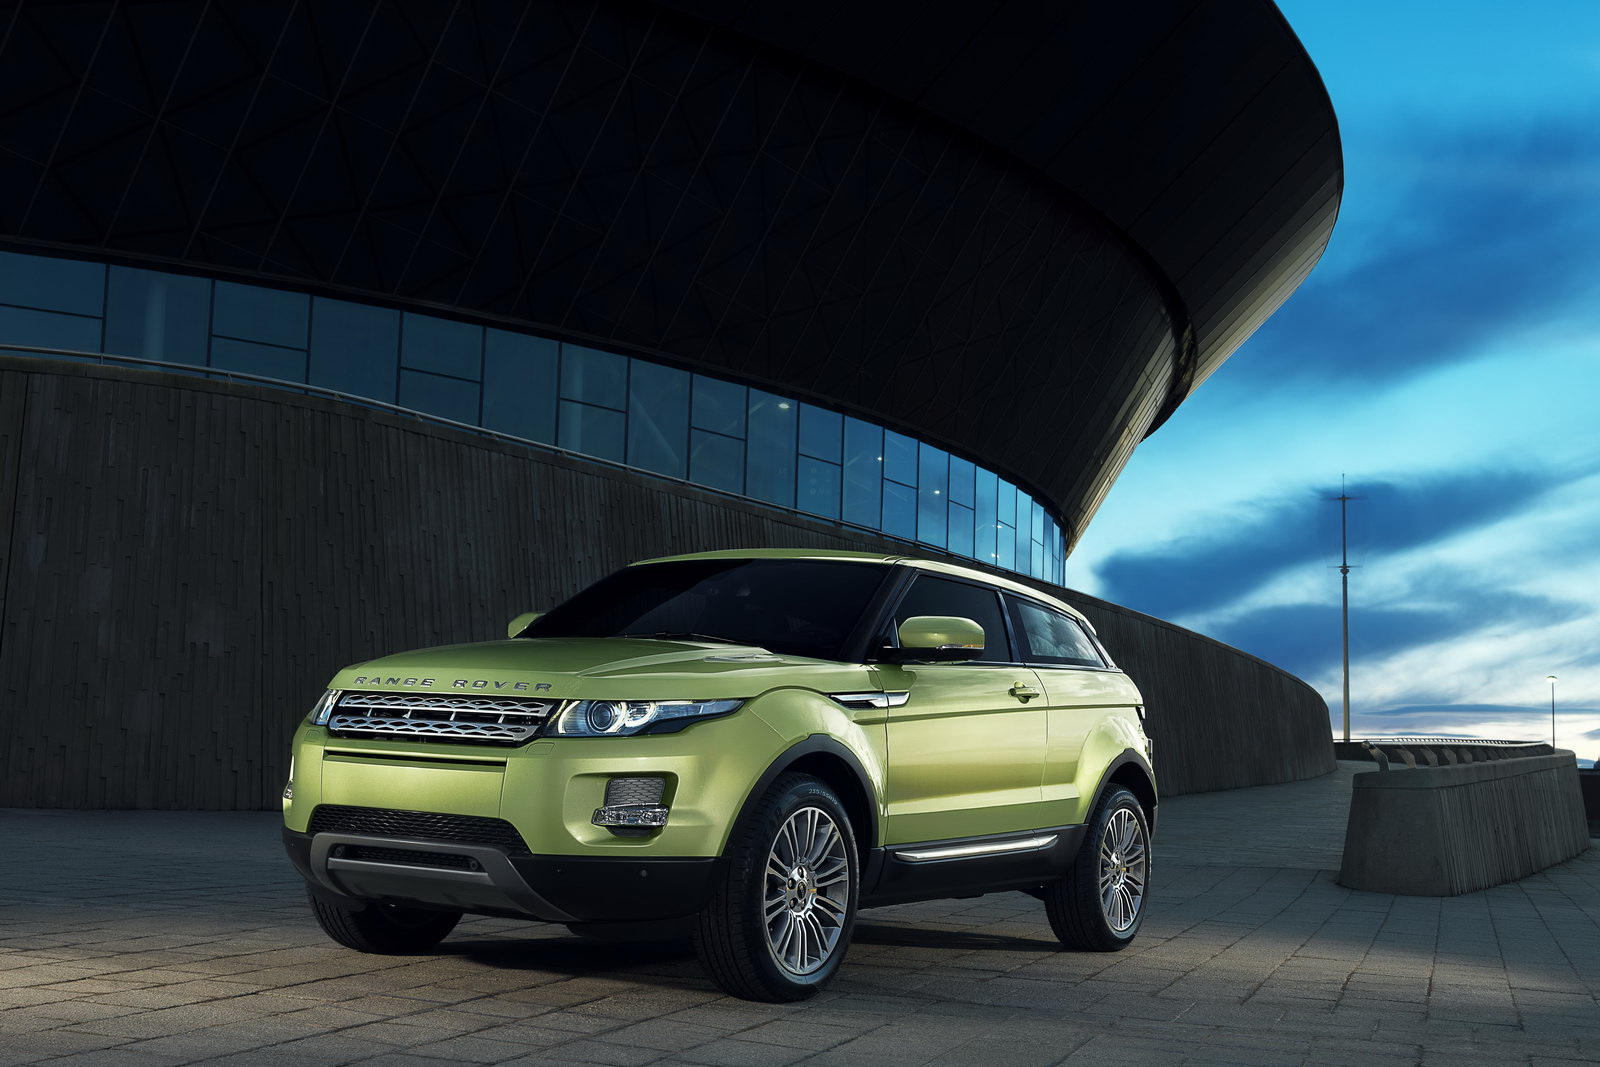 In4ride Range Rover Evoque Prices For South Africa